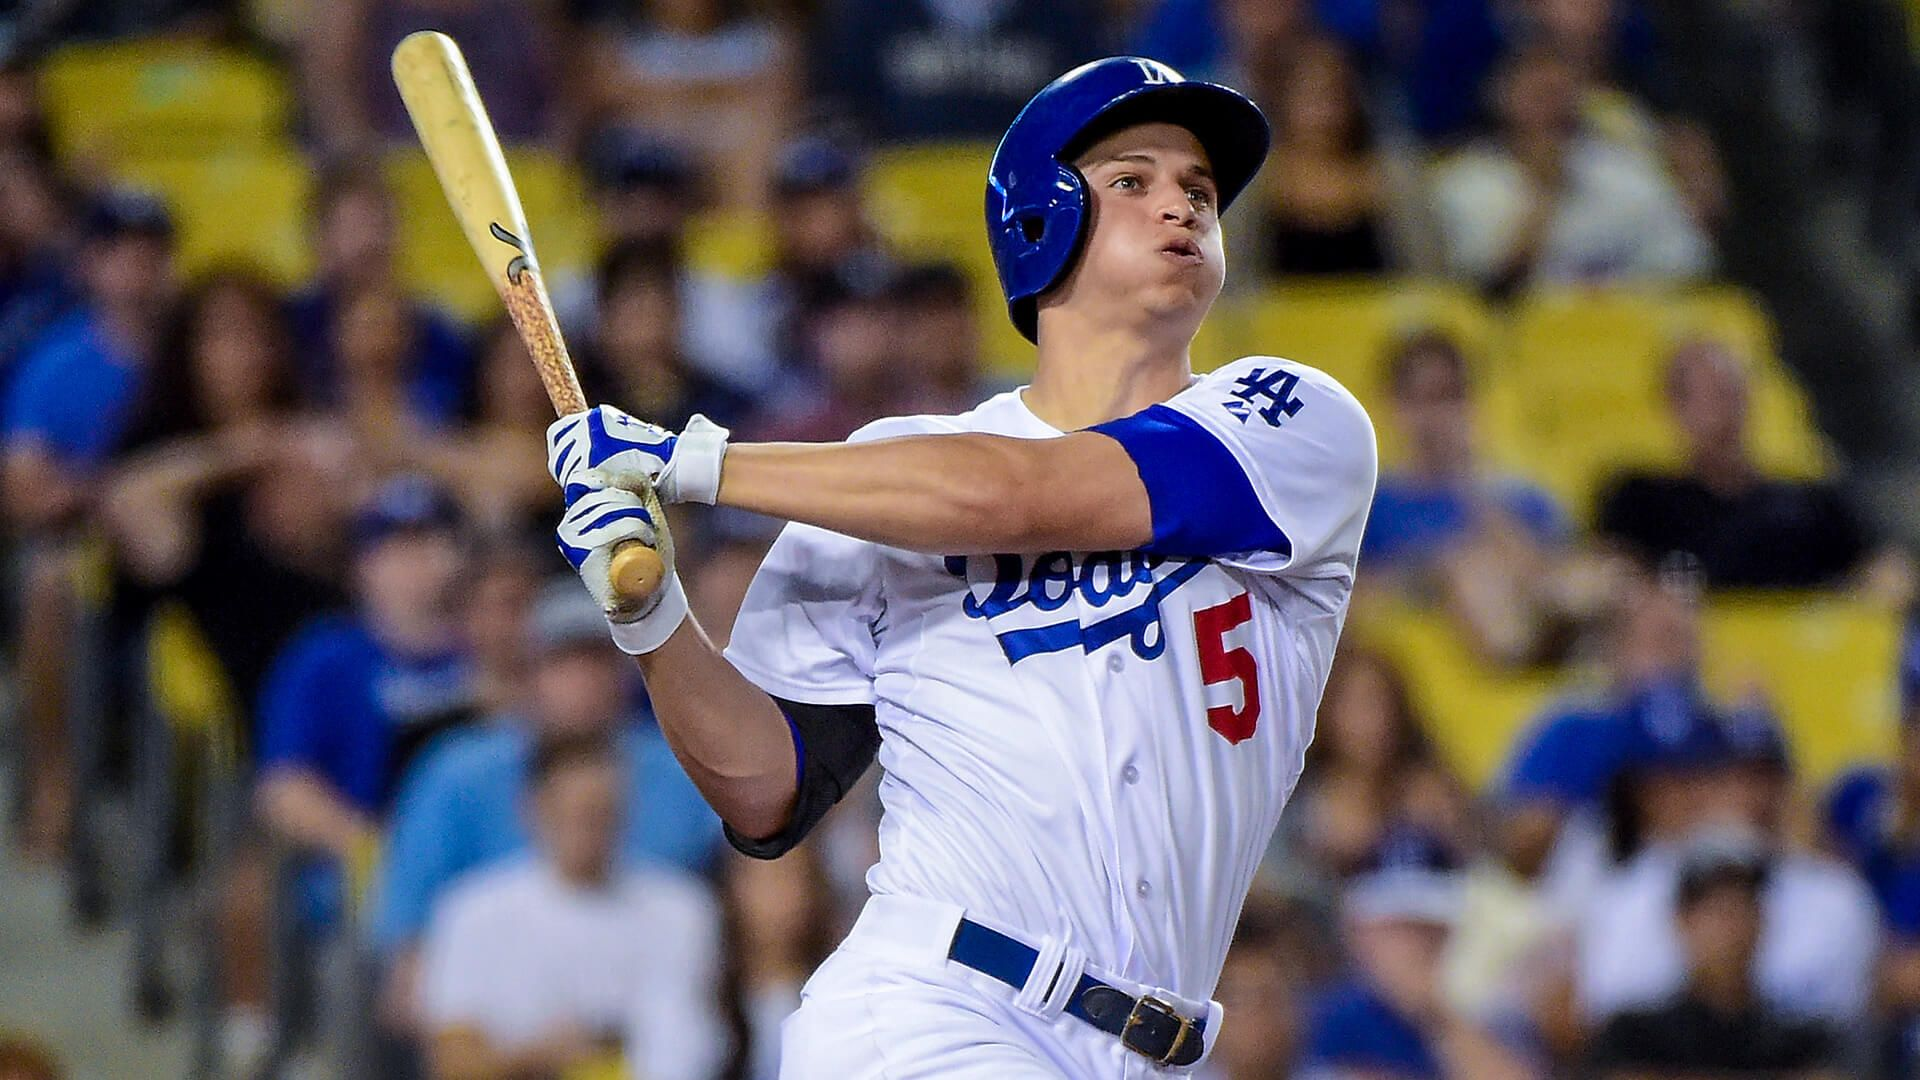 Corey Seager might have hit three dongs last night, but he